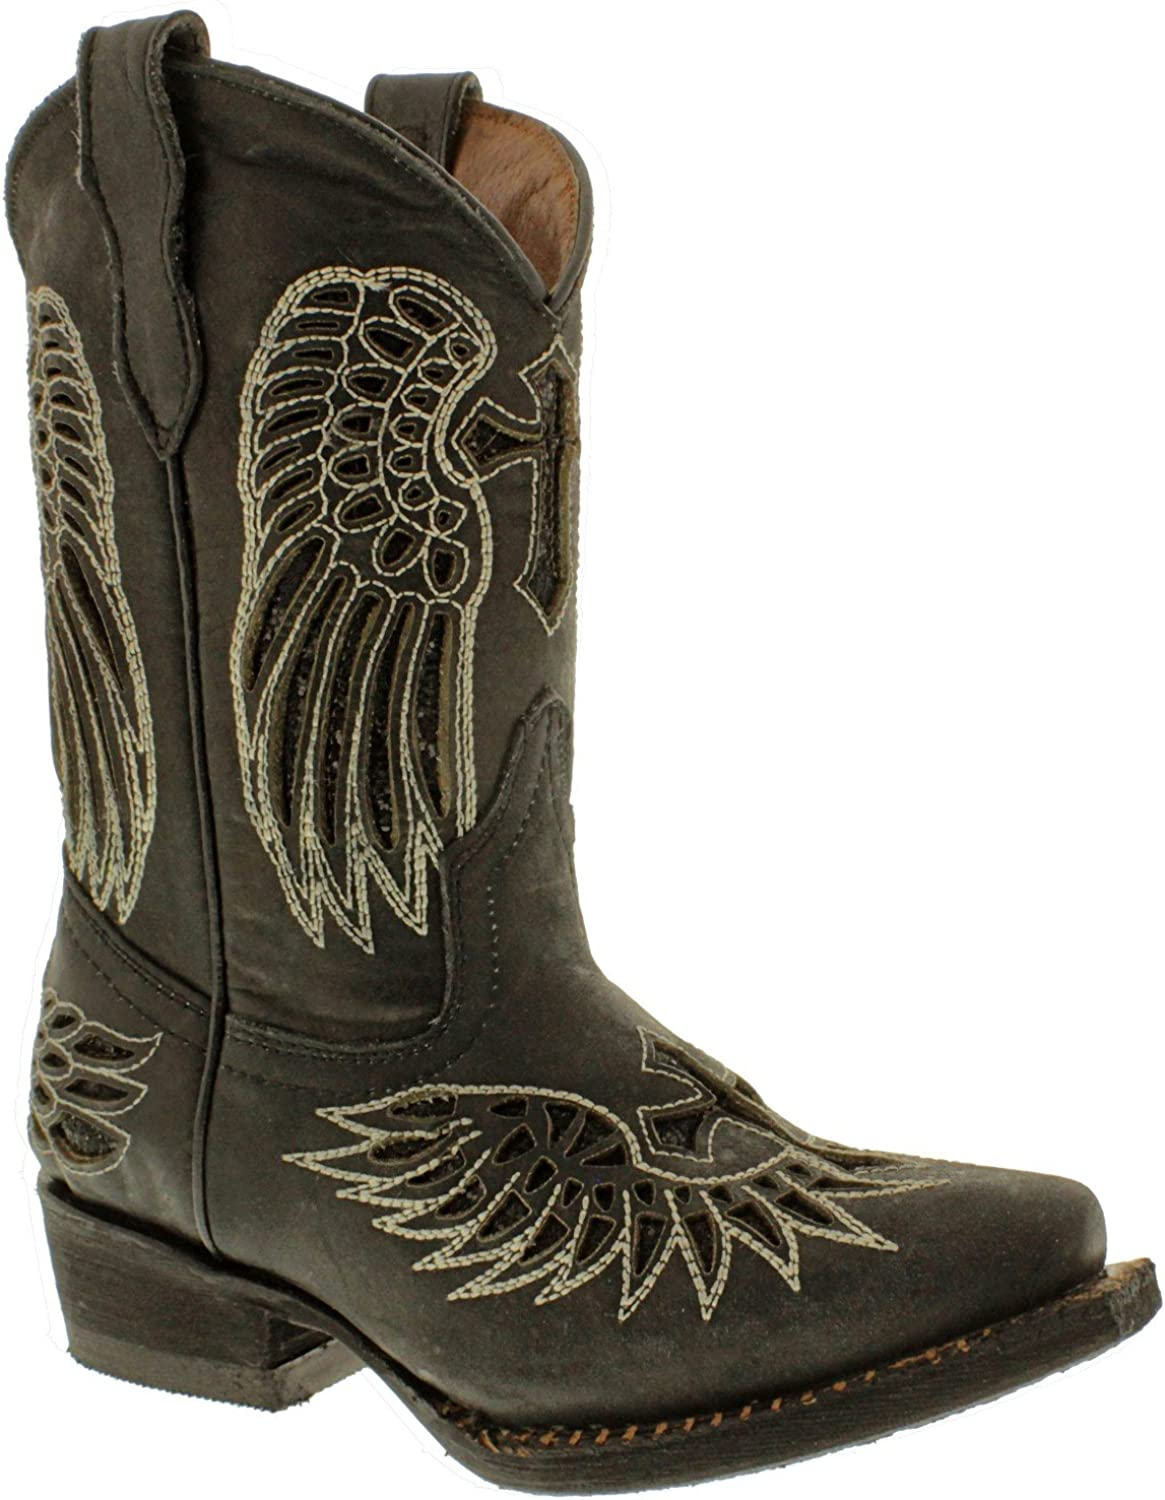 cross boots with wings